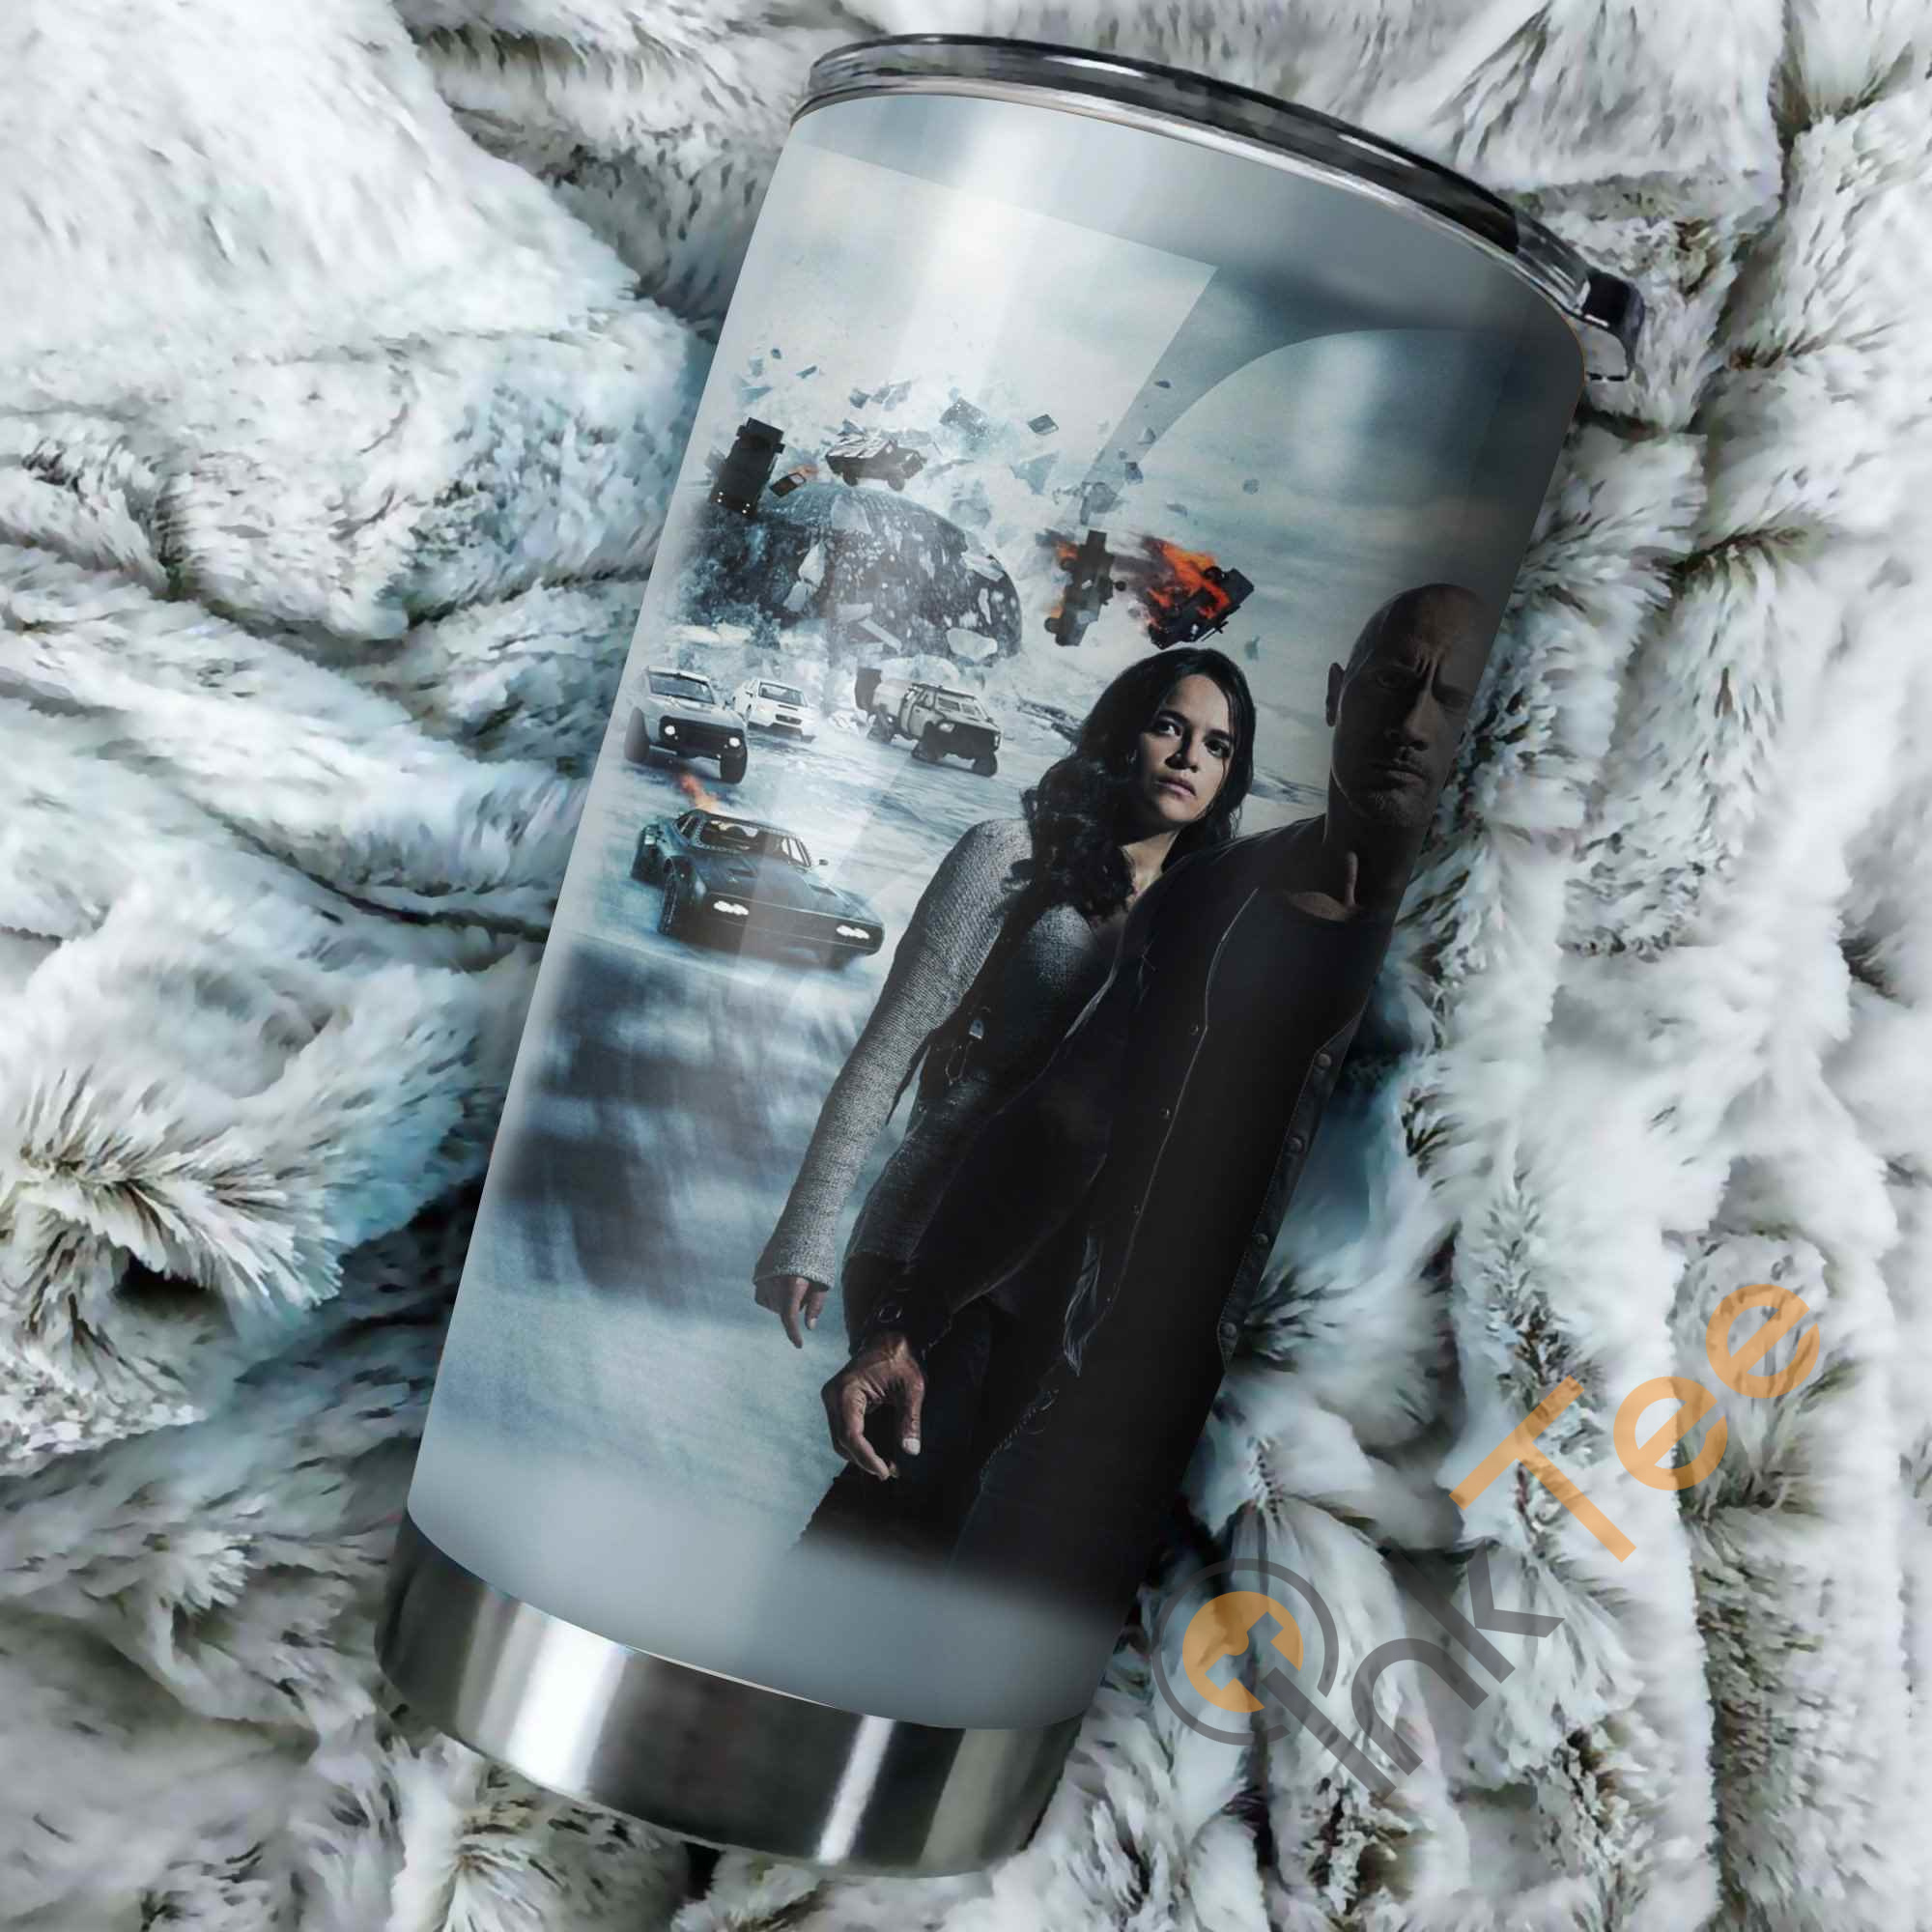 Fast Furious 9 Poster Perfect Gift Stainless Steel Tumbler